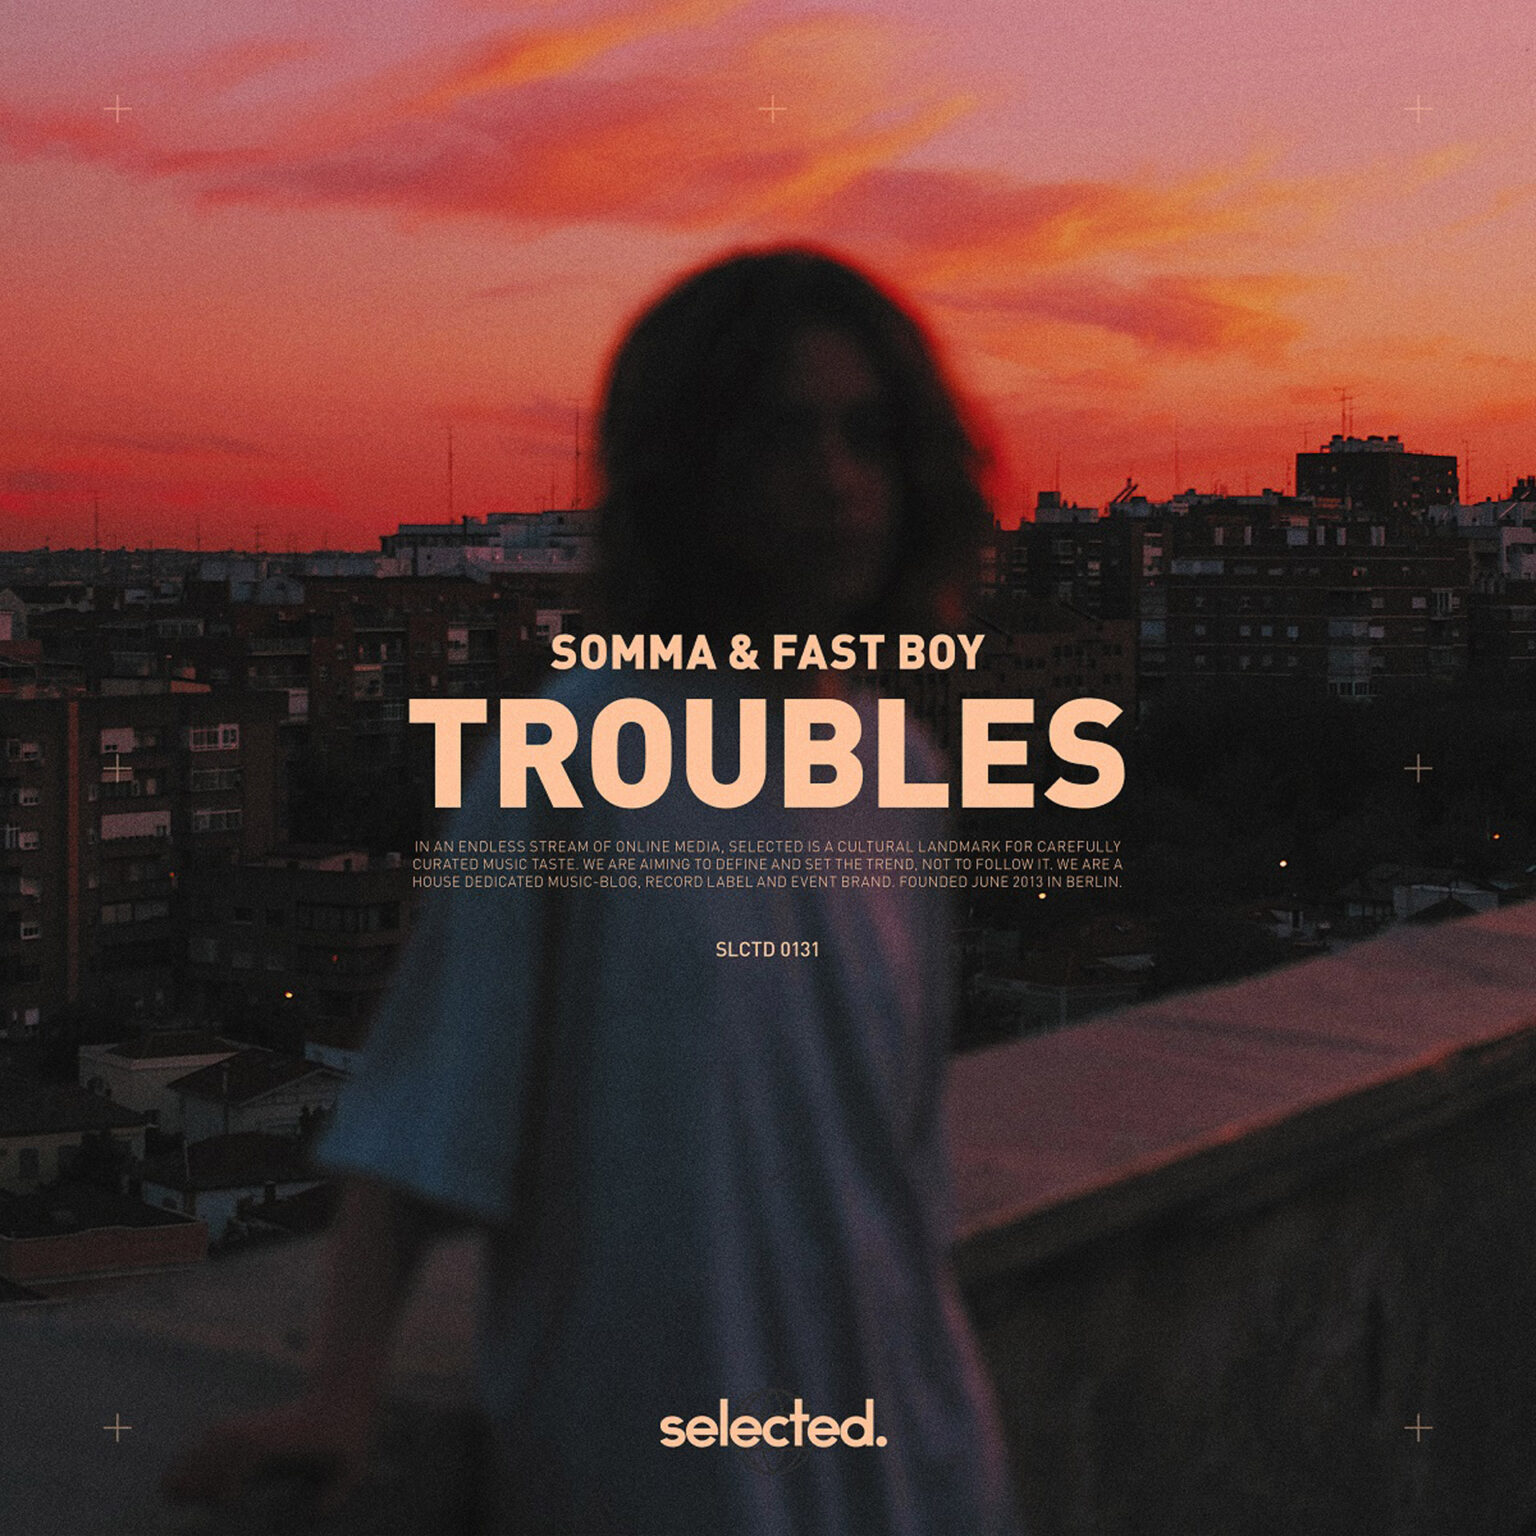 Somma & Fastboy - Troubles - s'läuft! Radio-Promotion